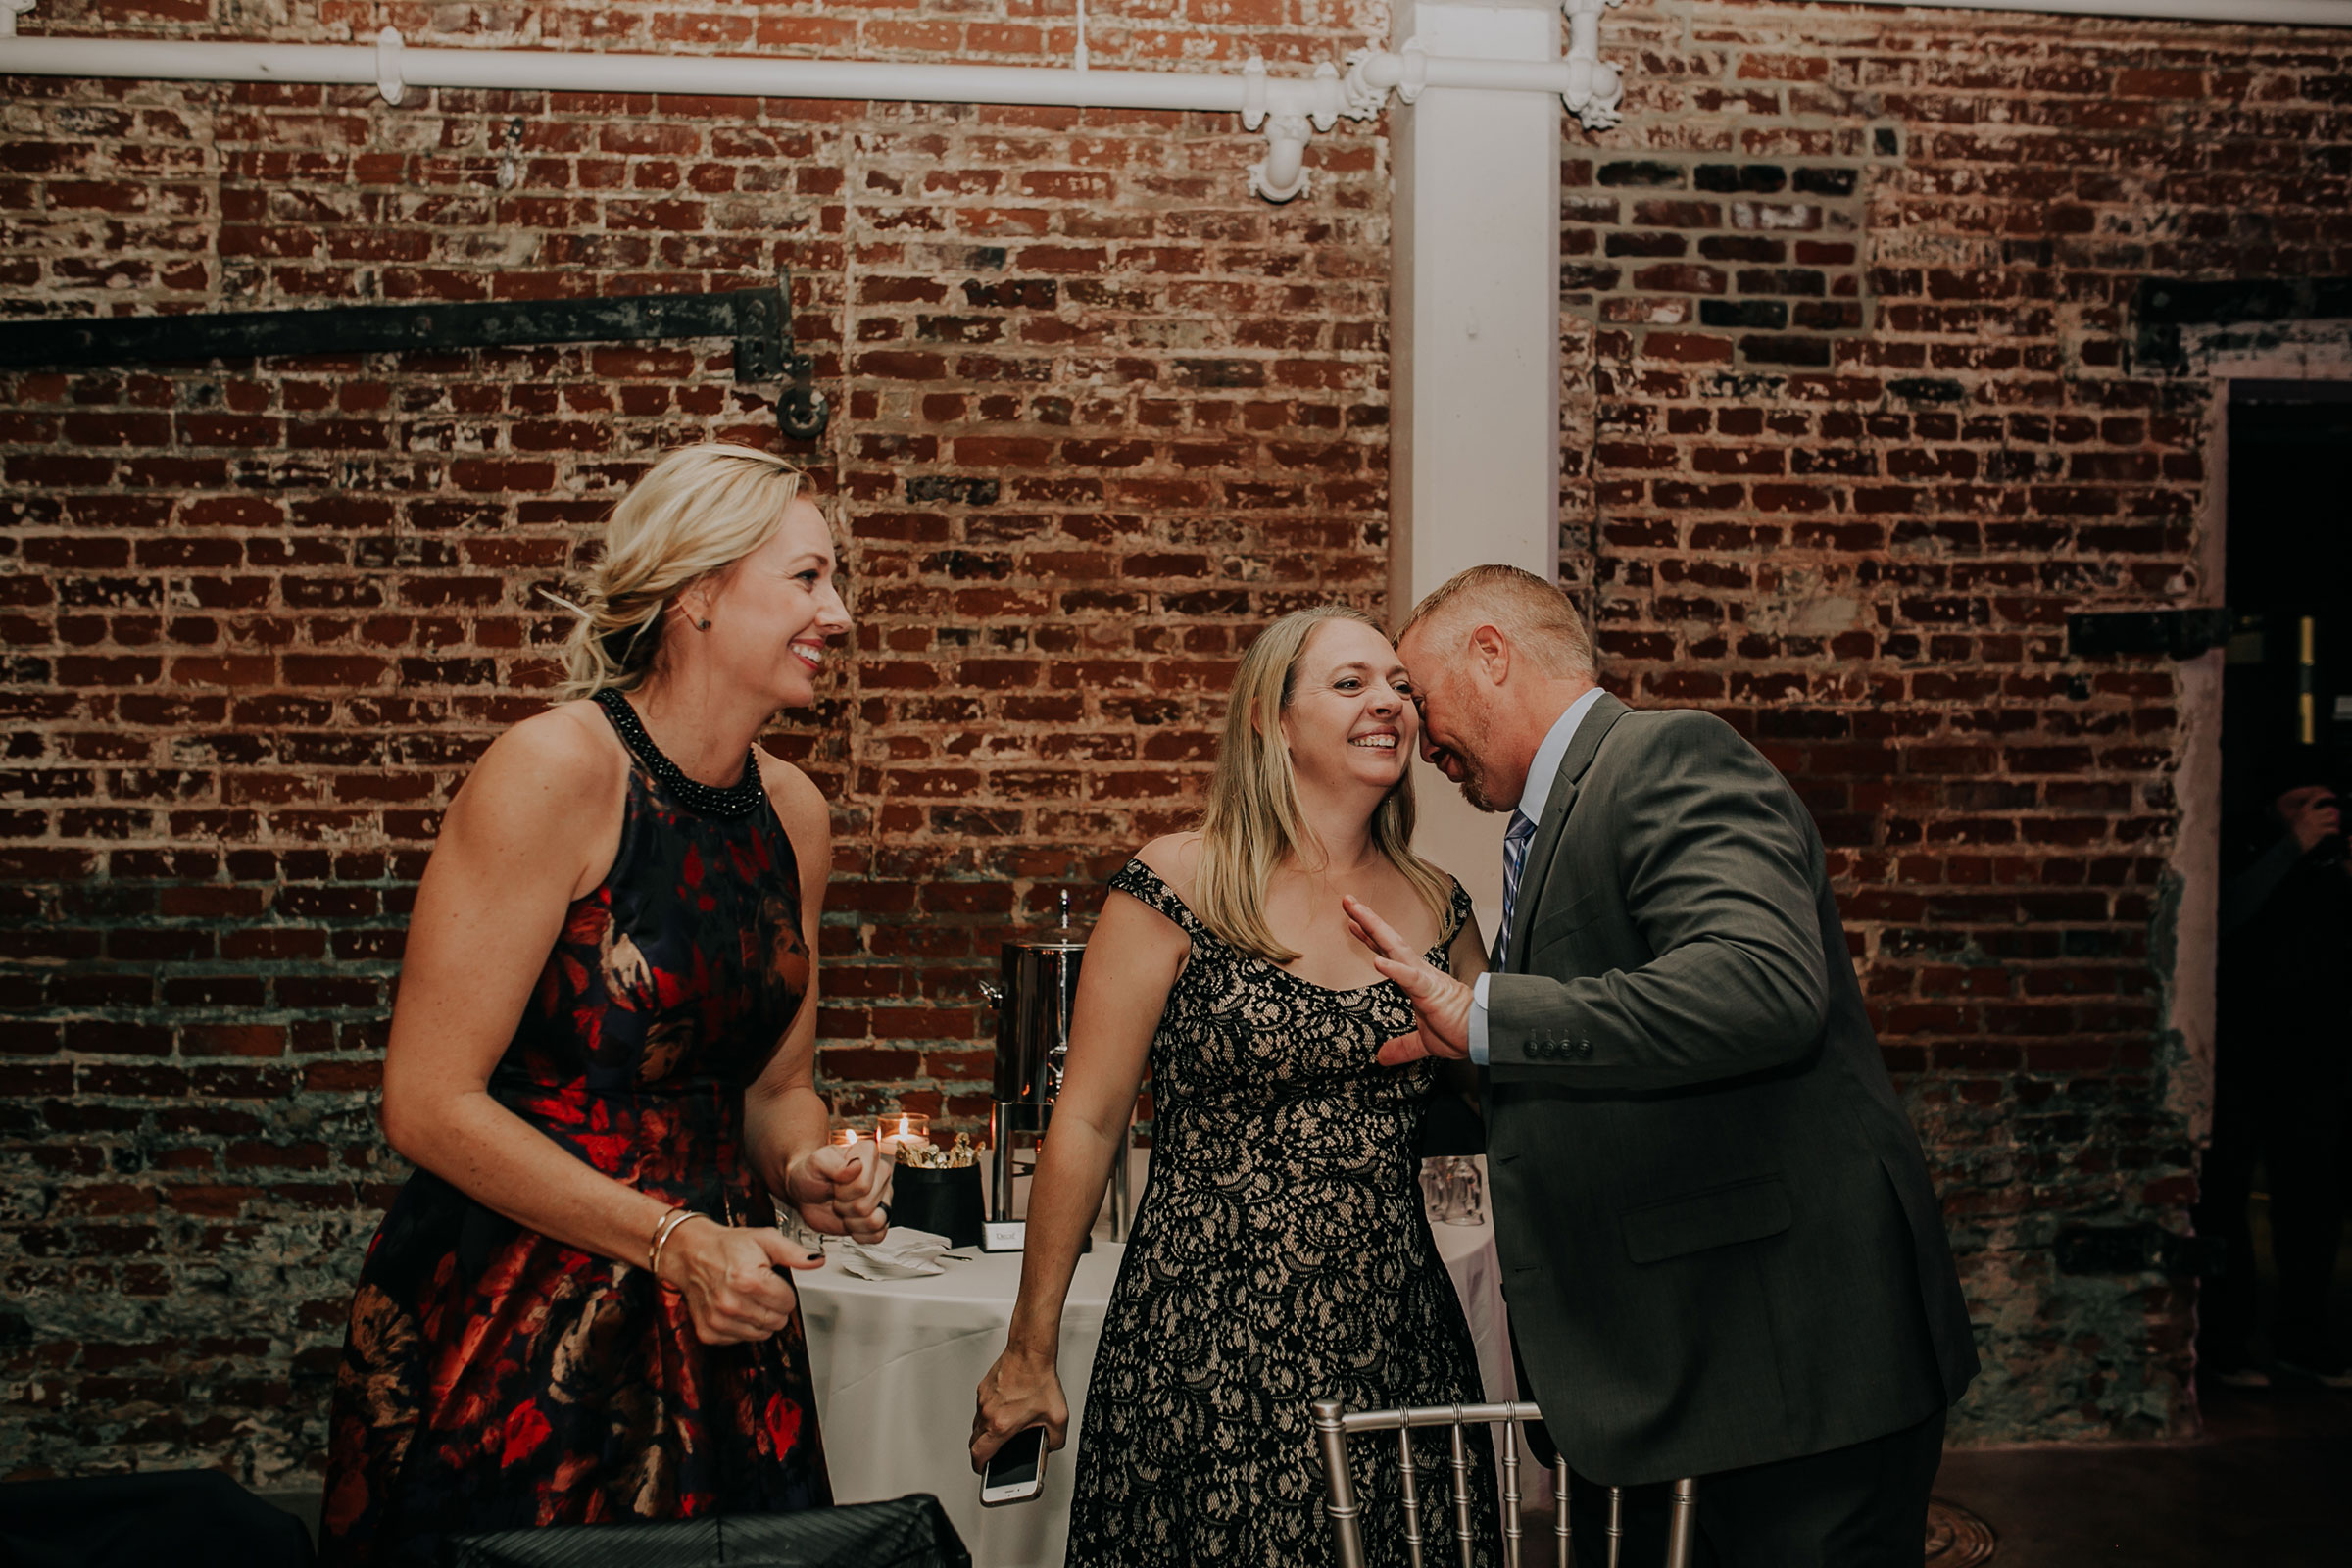 guests-talking-and-laughing-at-reception-founders-one-nine-omaha-nebraska-raelyn-ramey-photography.jpg